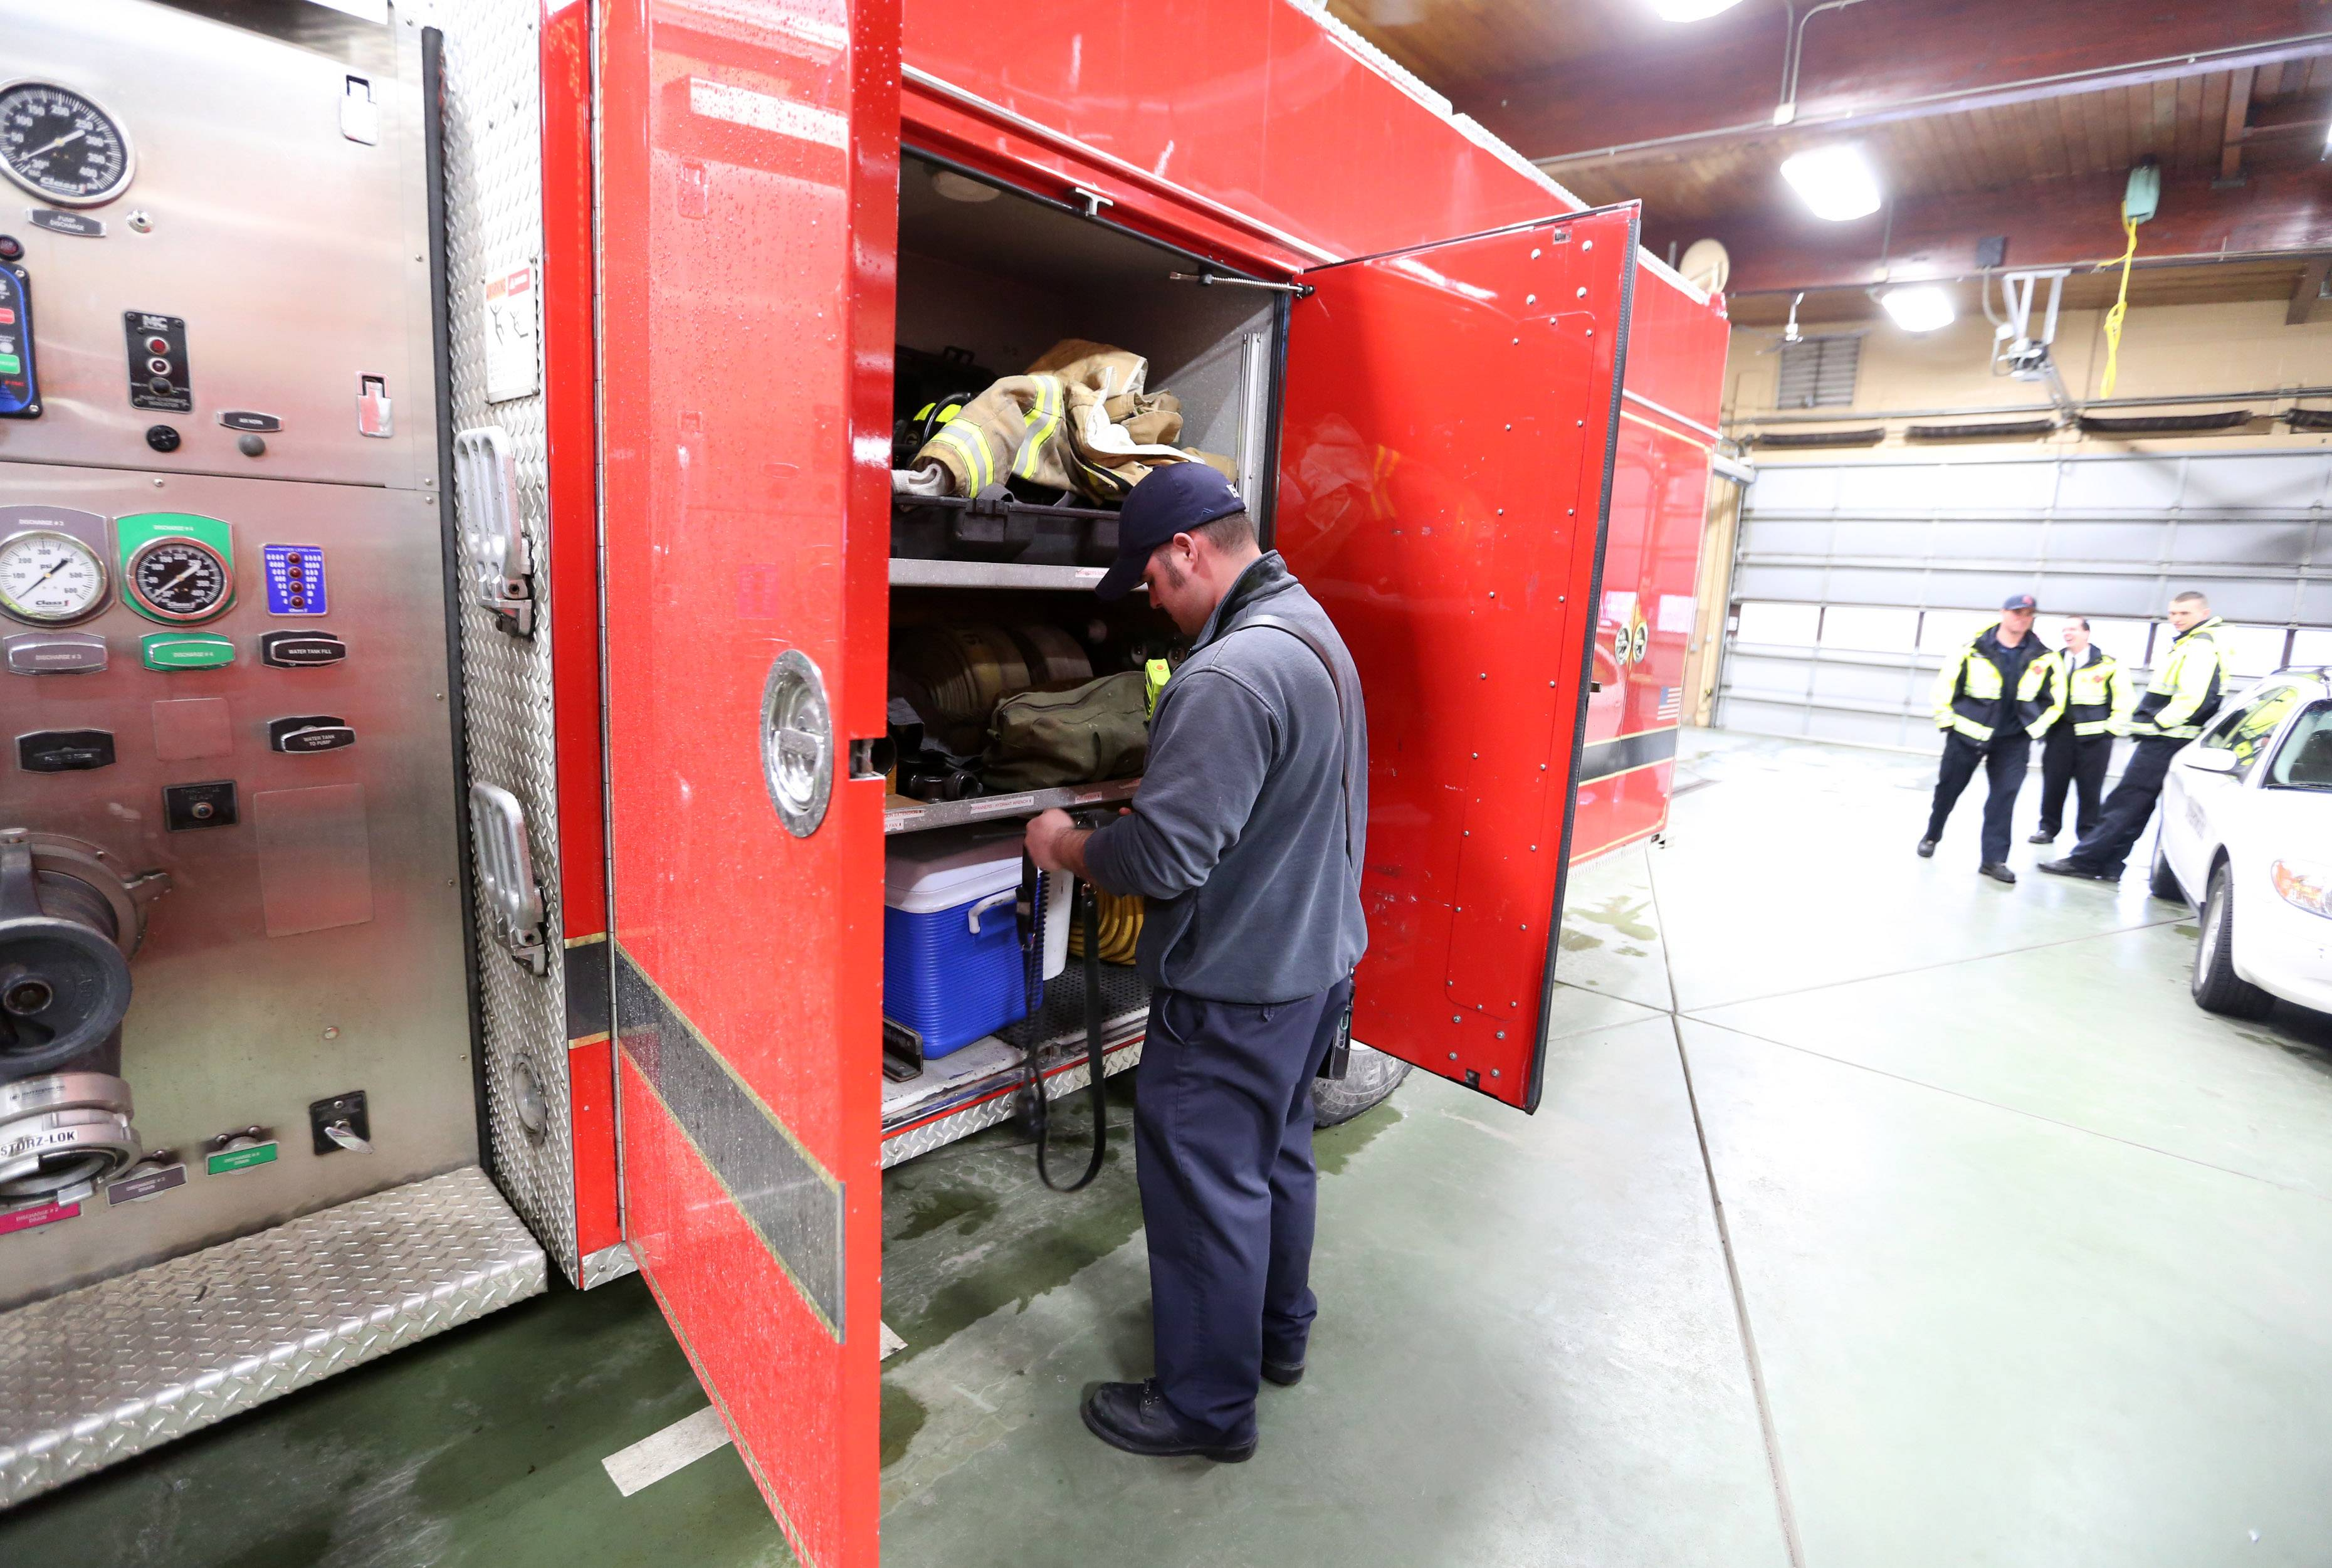 Streamwood firefighter-paramedic Joe Enzbigilis inspects equipment on a truck at Streamwood Fire Station No. 1 on Park Boulevard.